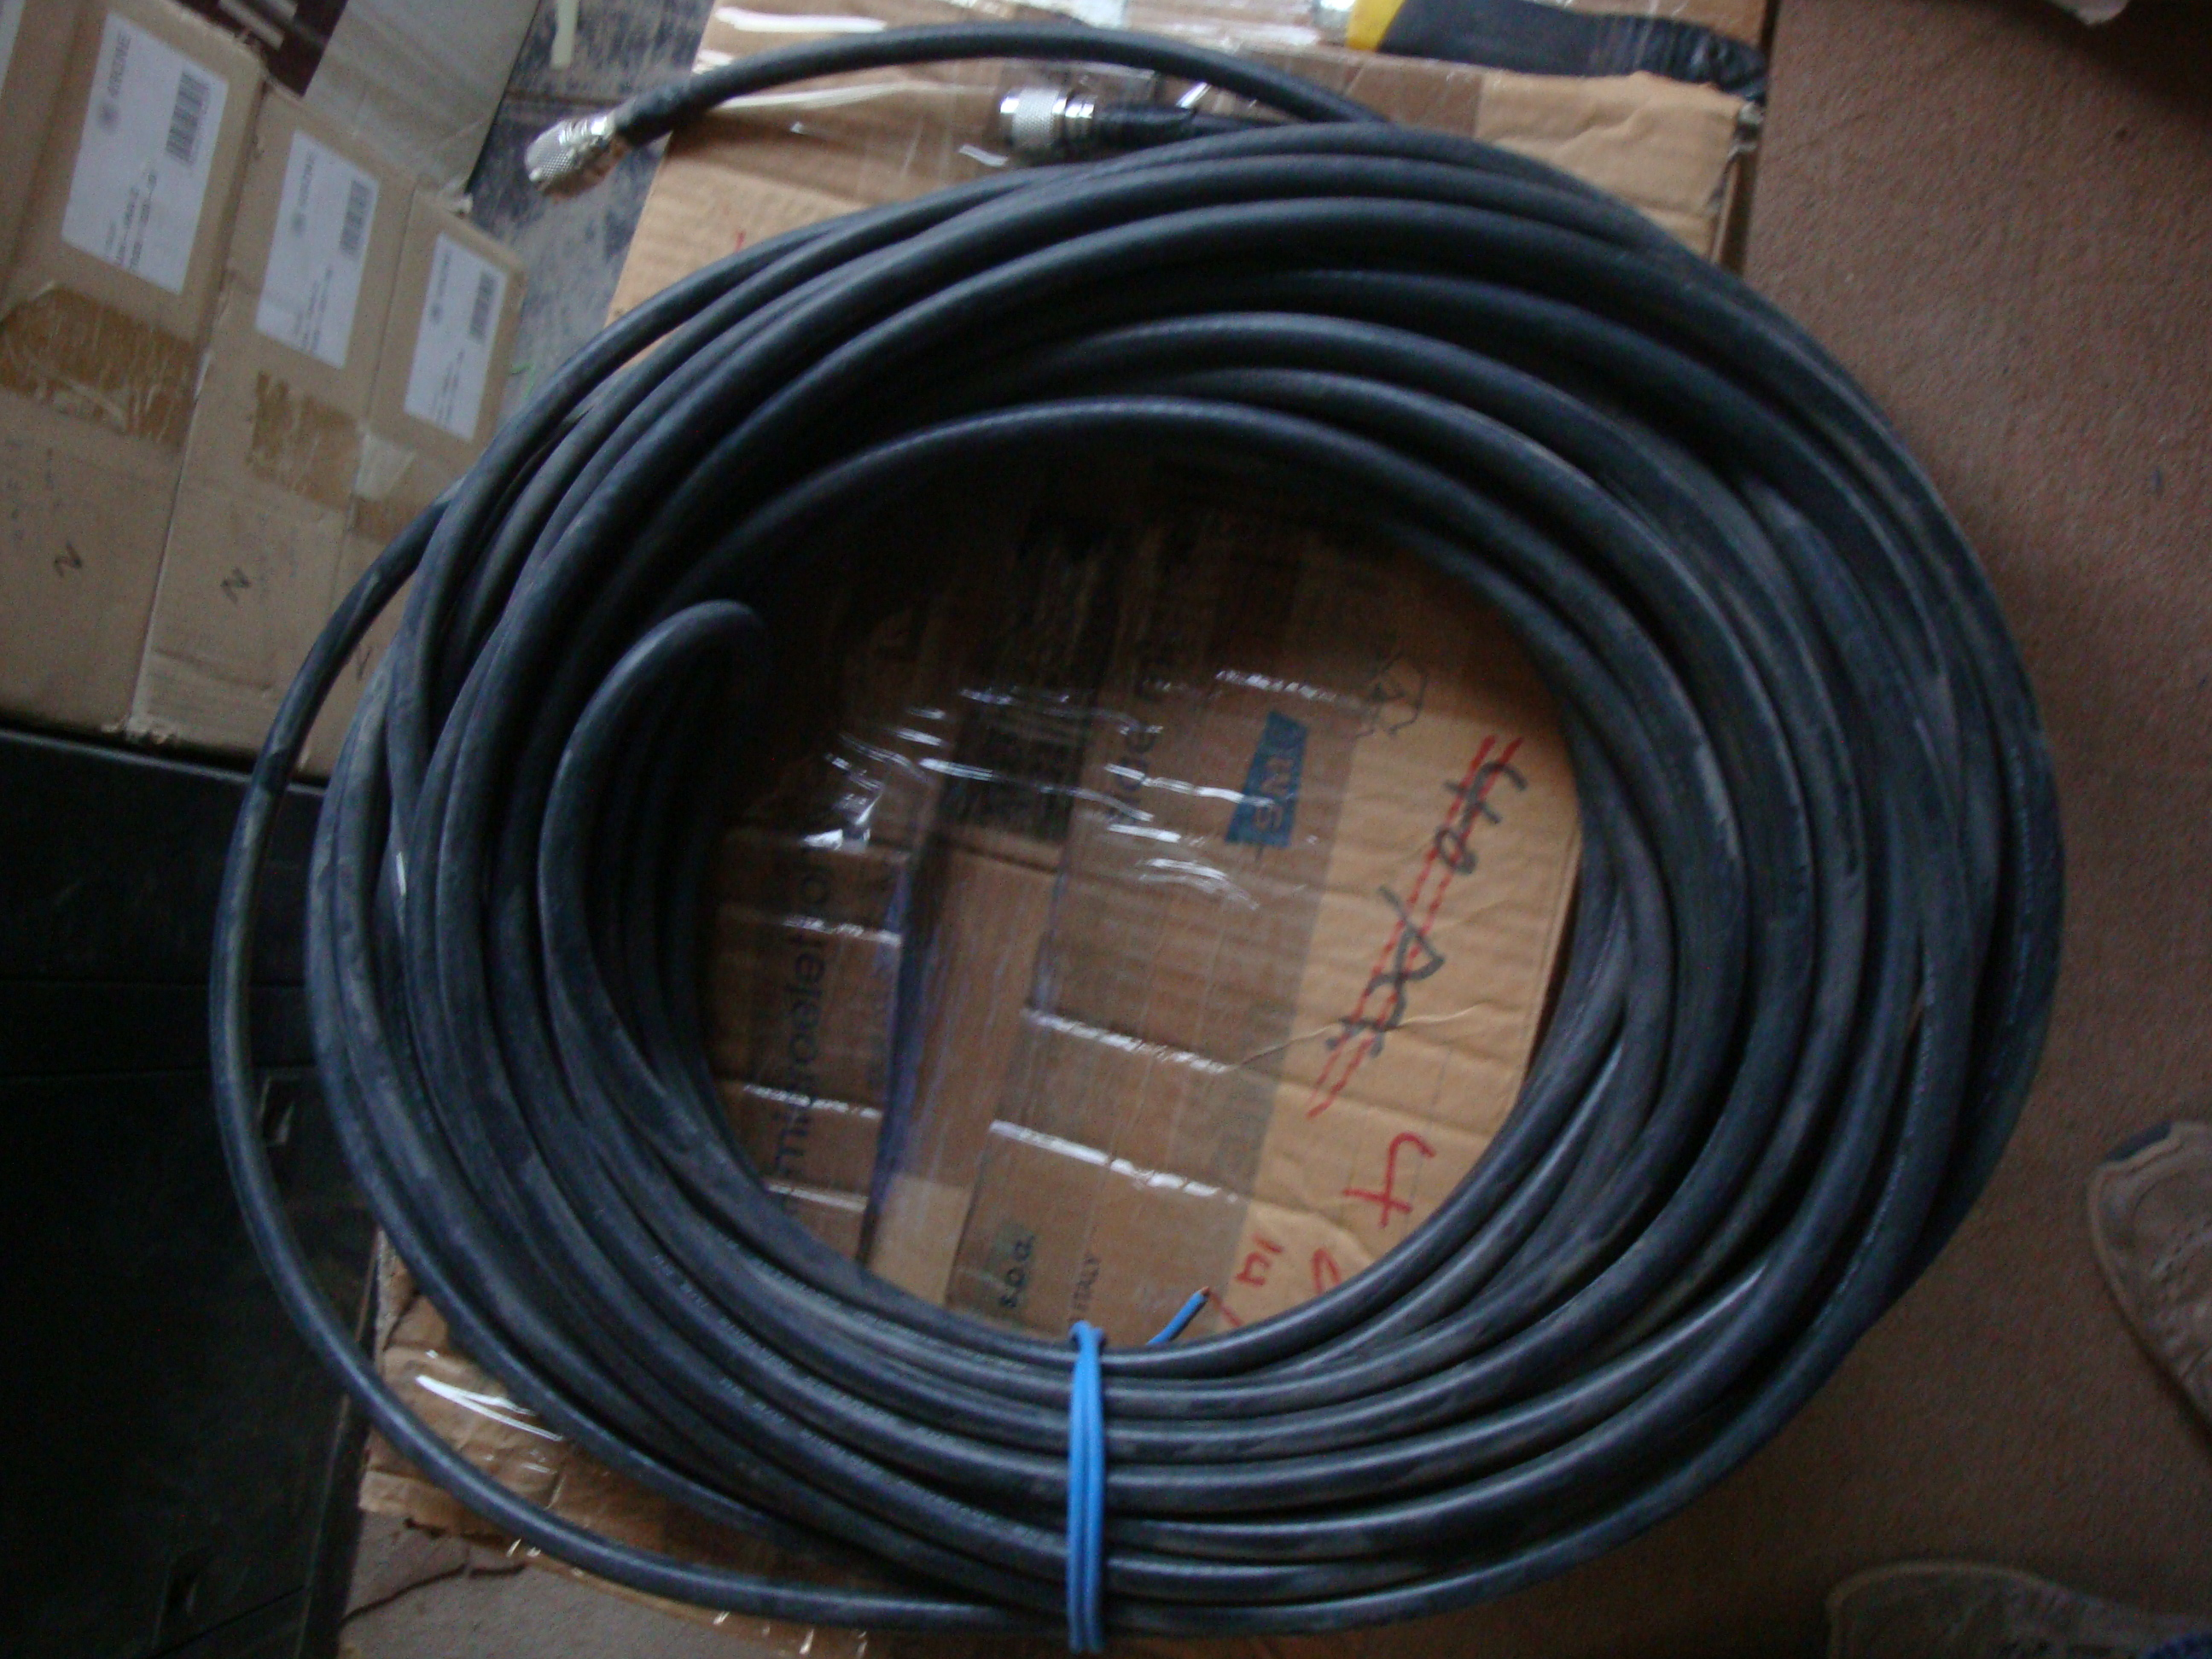 RG8 COAXIAL CABLE WITH N-TYPE MALE CONNECTOR